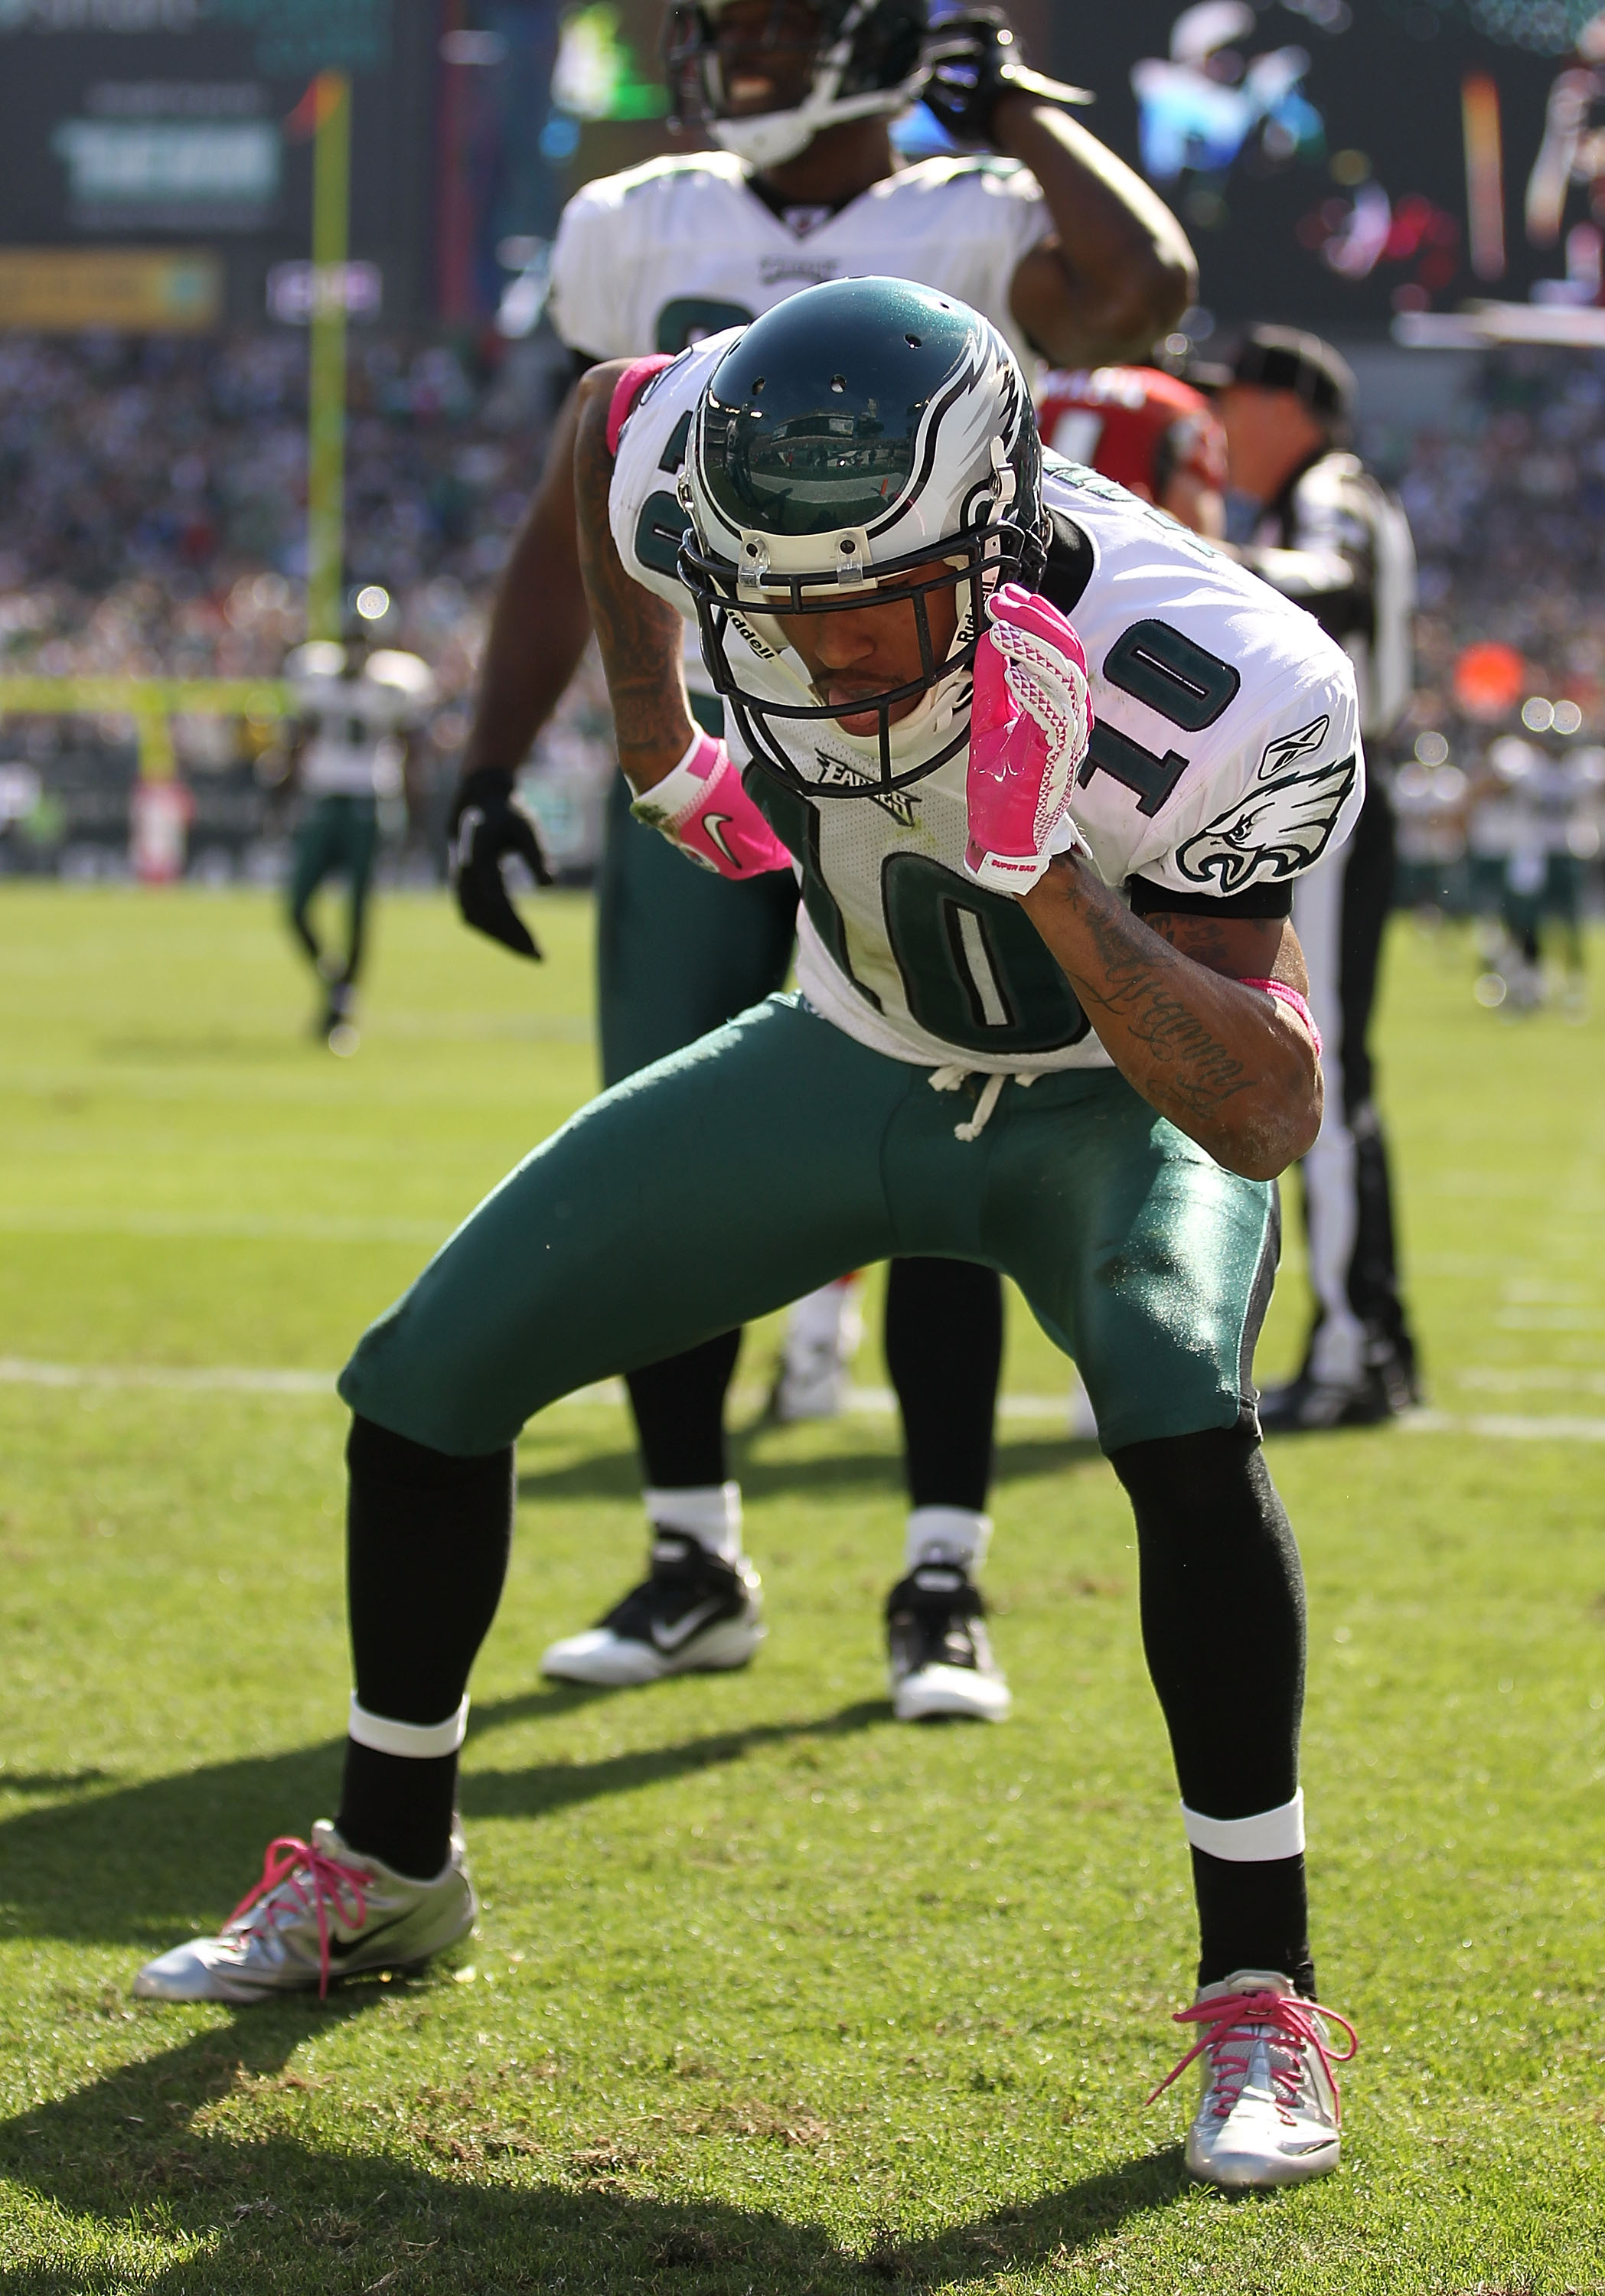 PHILADELPHIA - OCTOBER 17:  DeSean Jackson #10 of the Philadelphia Eagles celebrates after scoring a touchdown in the first quarter against the Atlanta Falcons defends during their game at Lincoln Financial Field on October 17, 2010 in Philadelphia, Penns